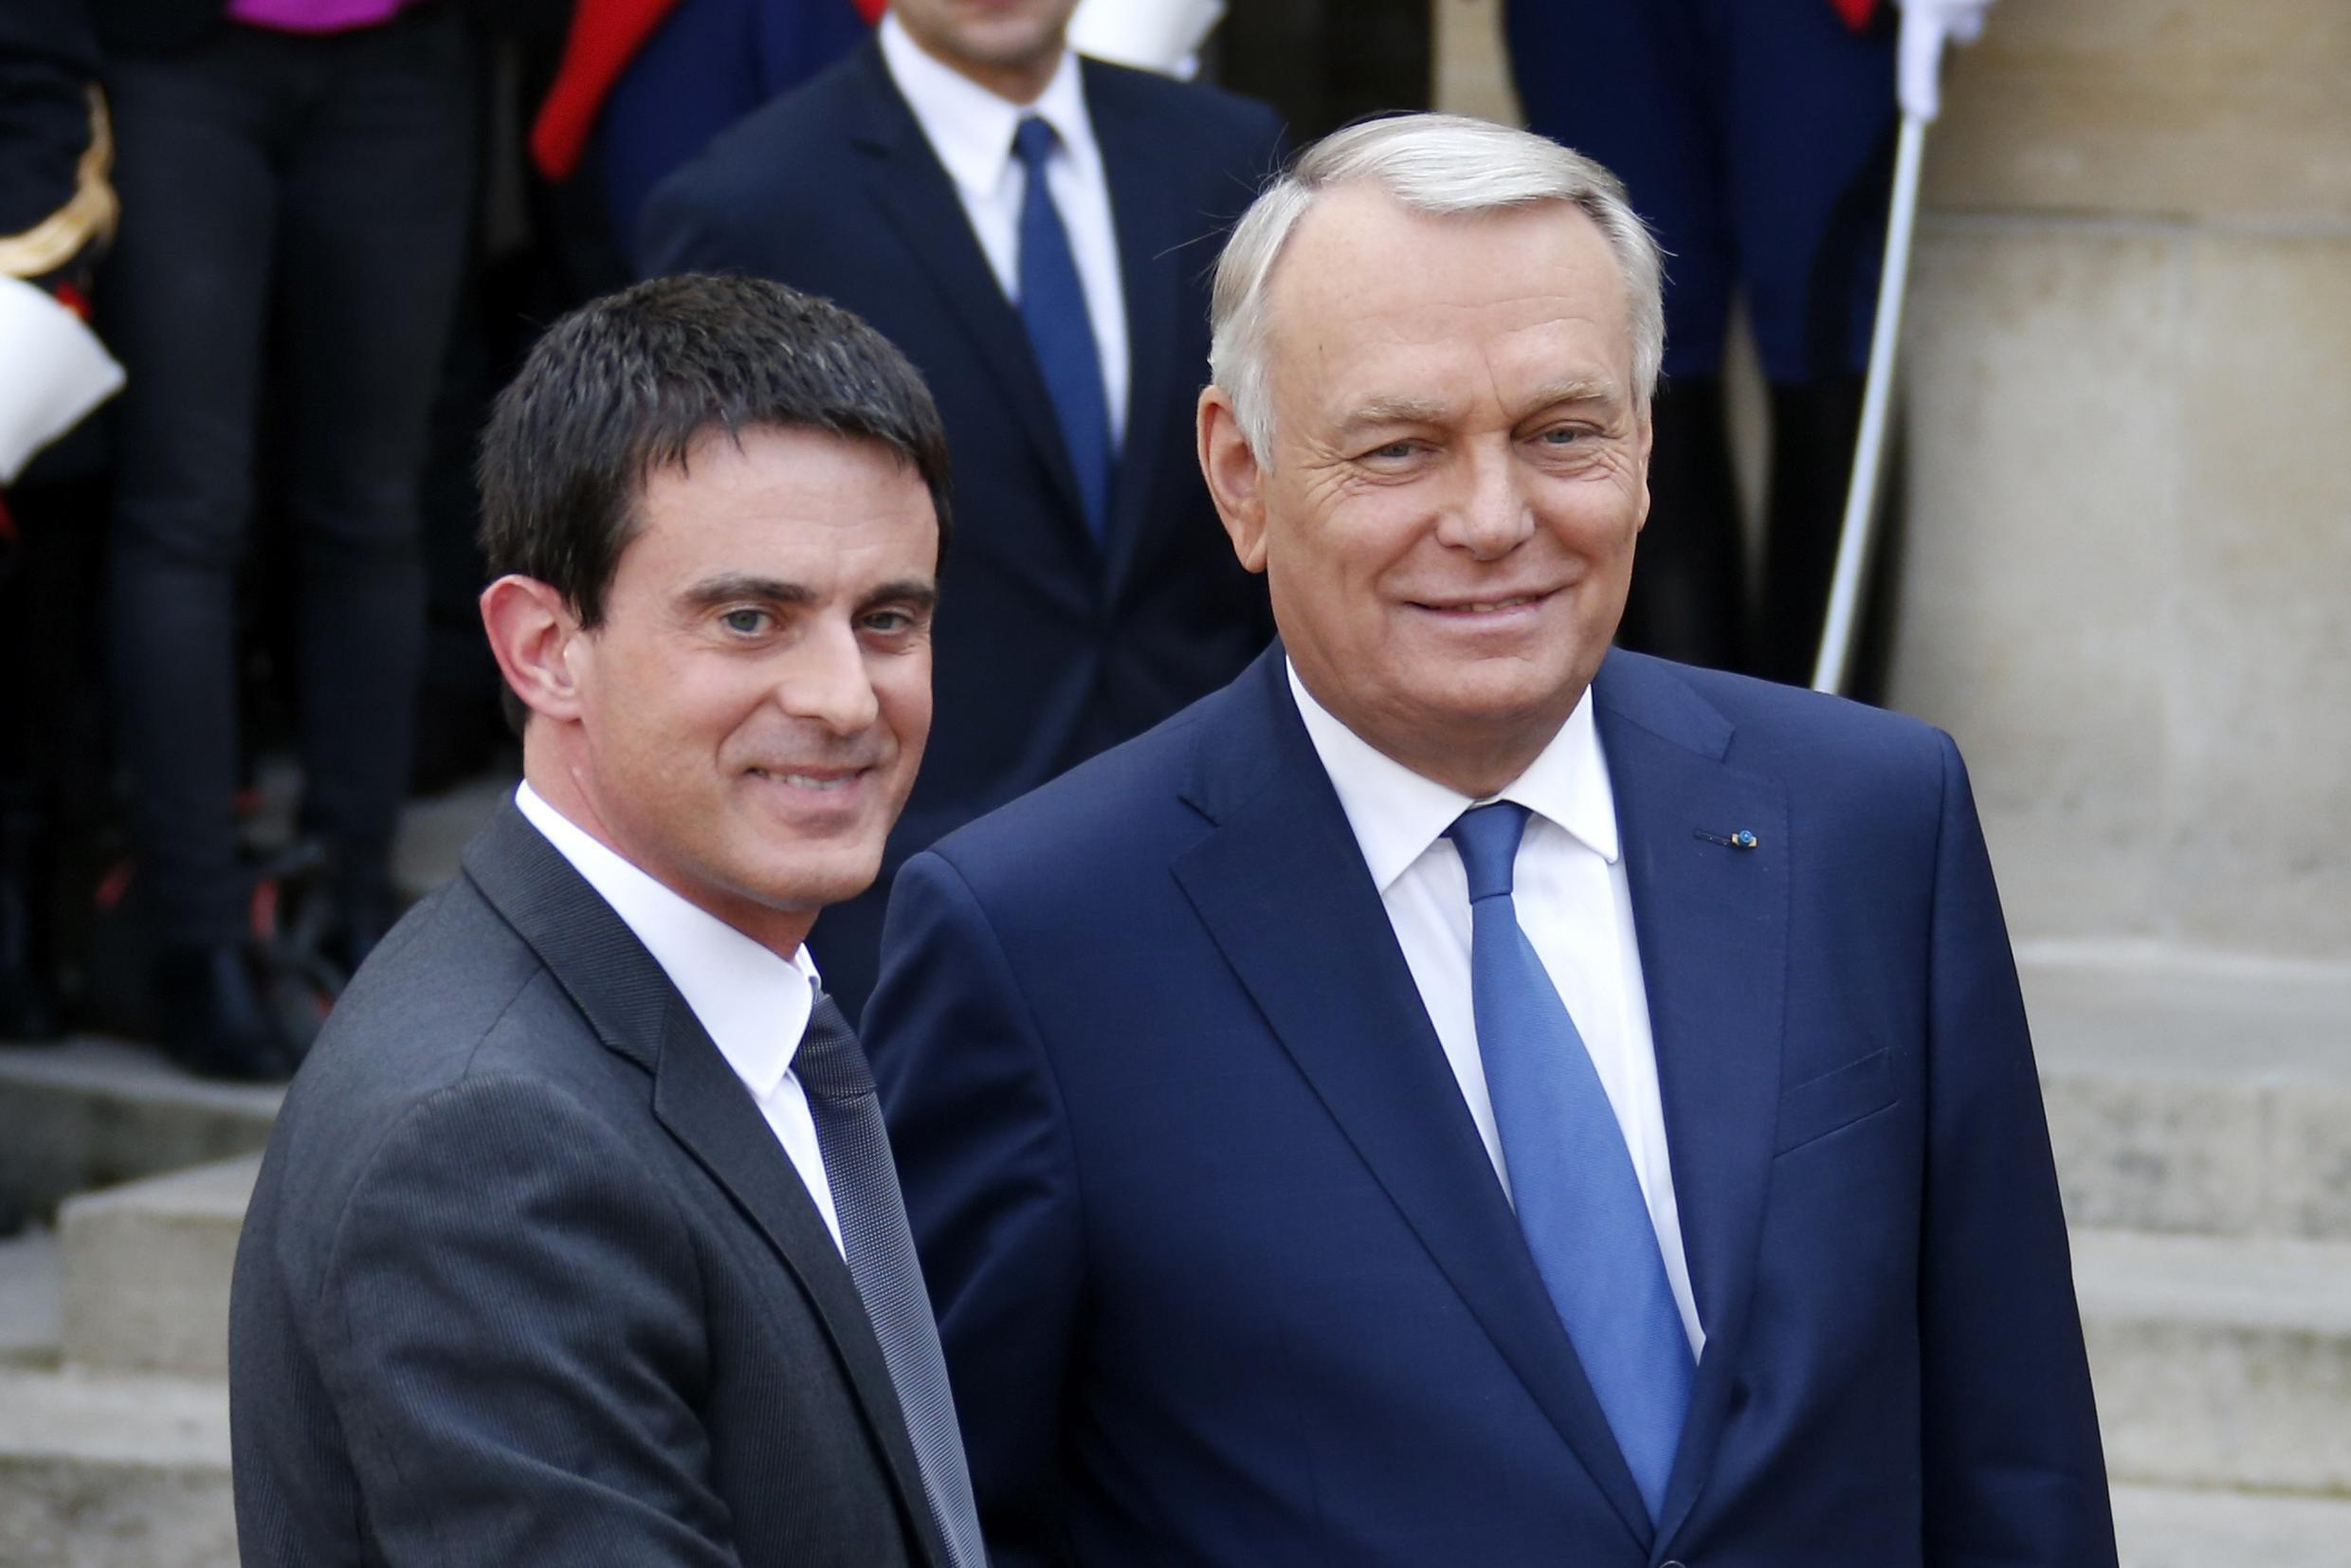 Manuel Valls (L) with Jean-Marc Ayrault  at Tuesday's handover ceremony